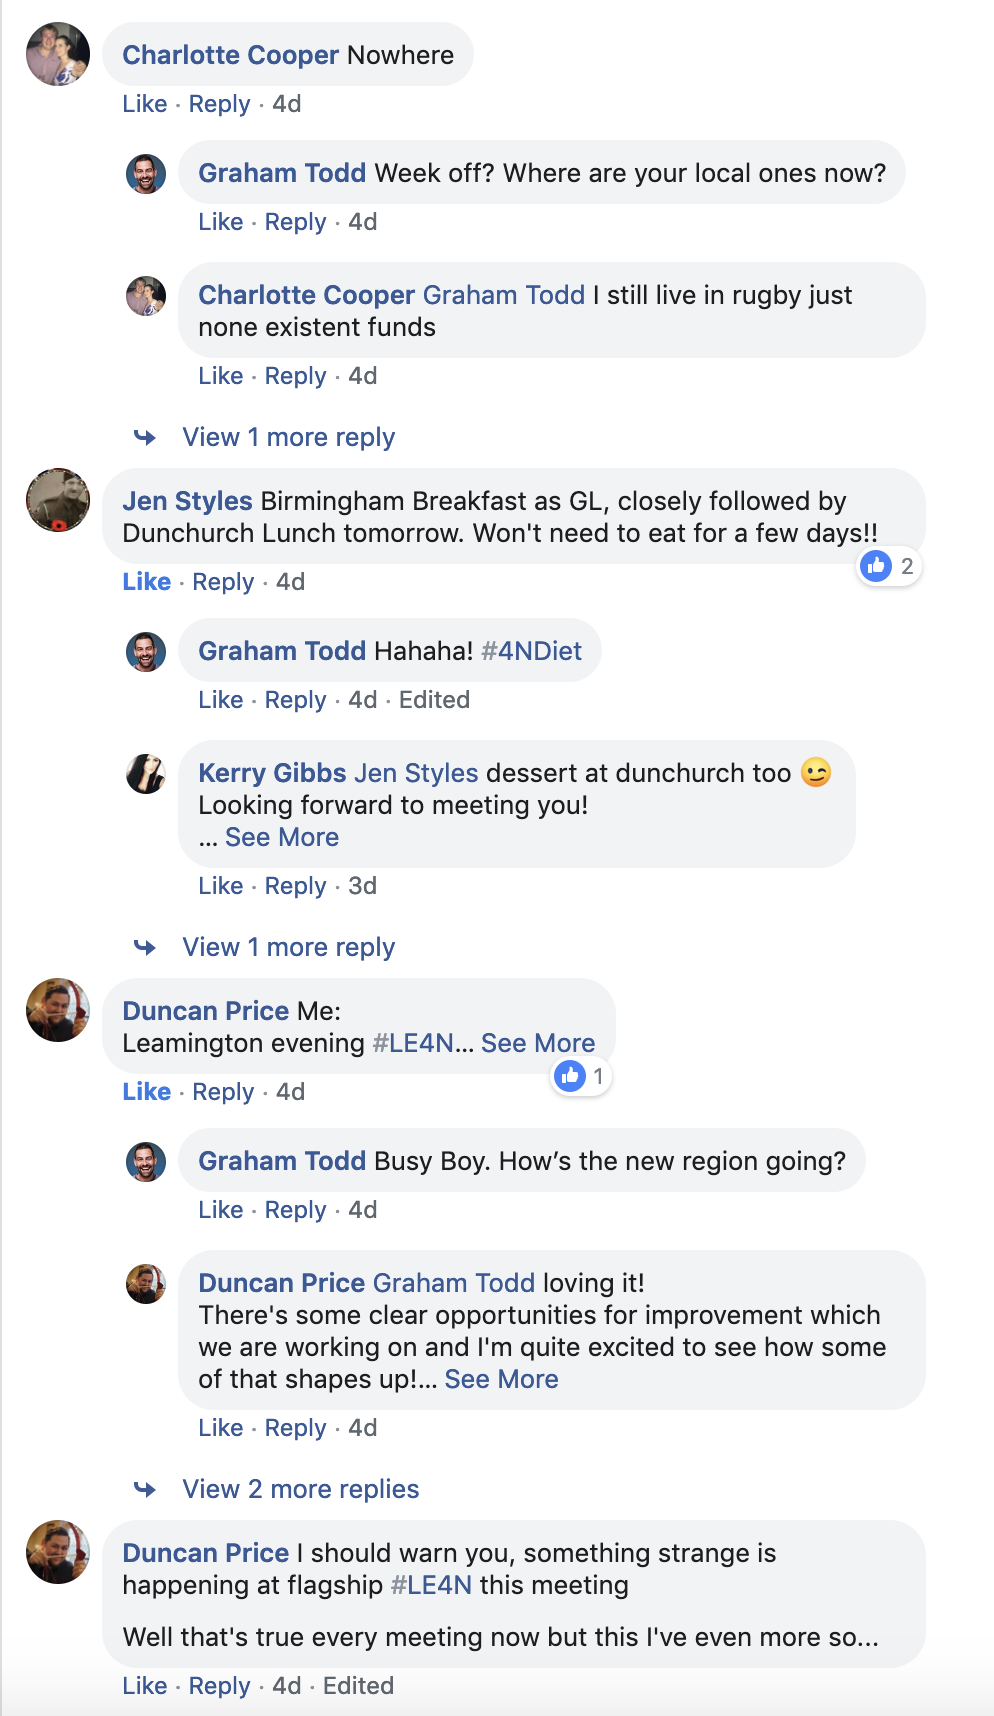 Driving engagement in Facebook groups